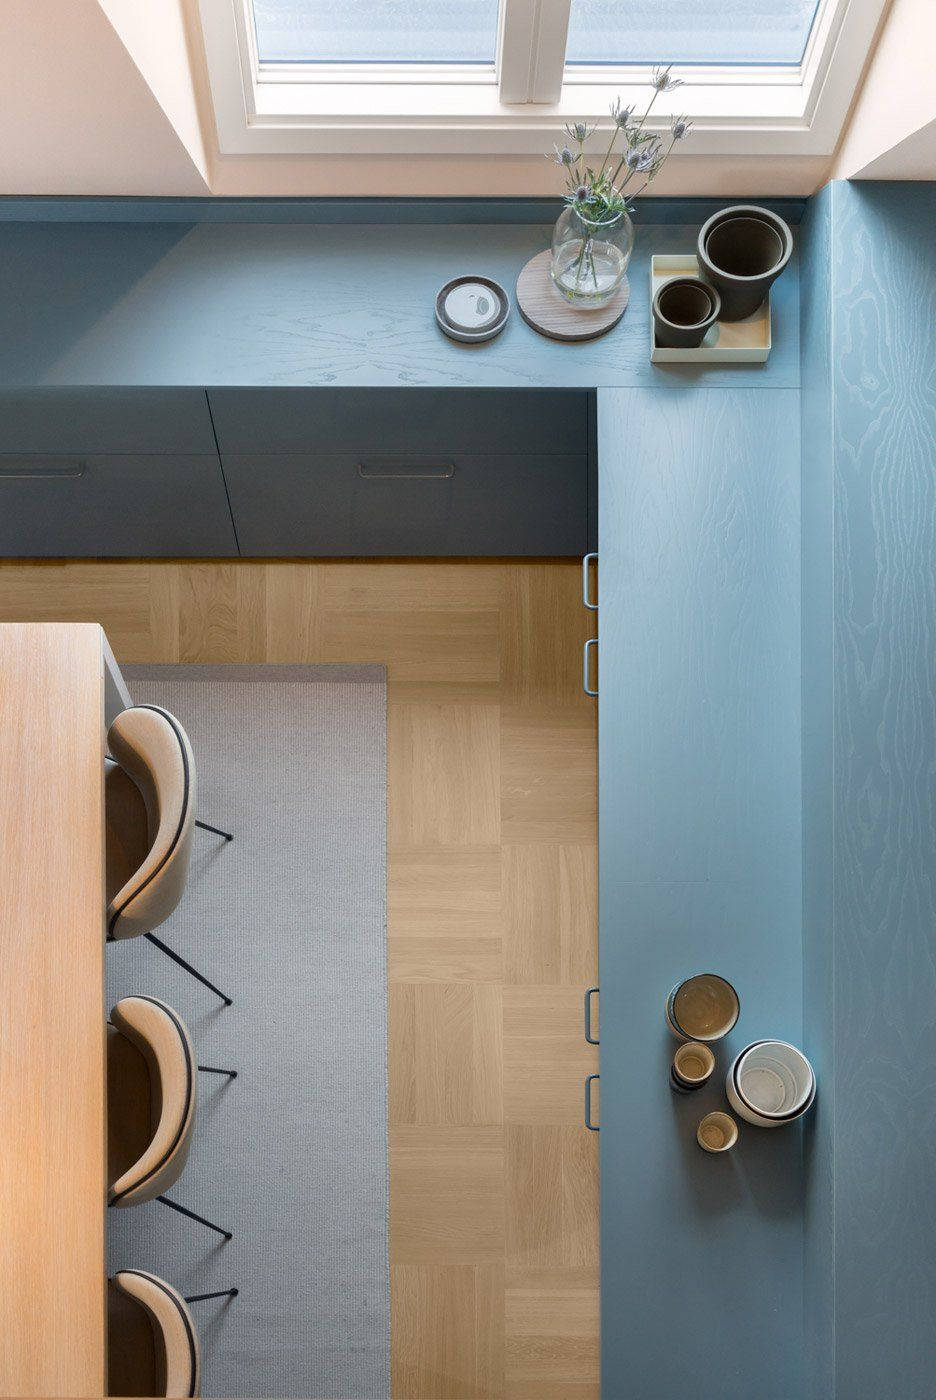 Minimalist scandinavian dining room in this swedish apartment renovated by note design studio spectacular blue cabinetry pair well with ever so slightly